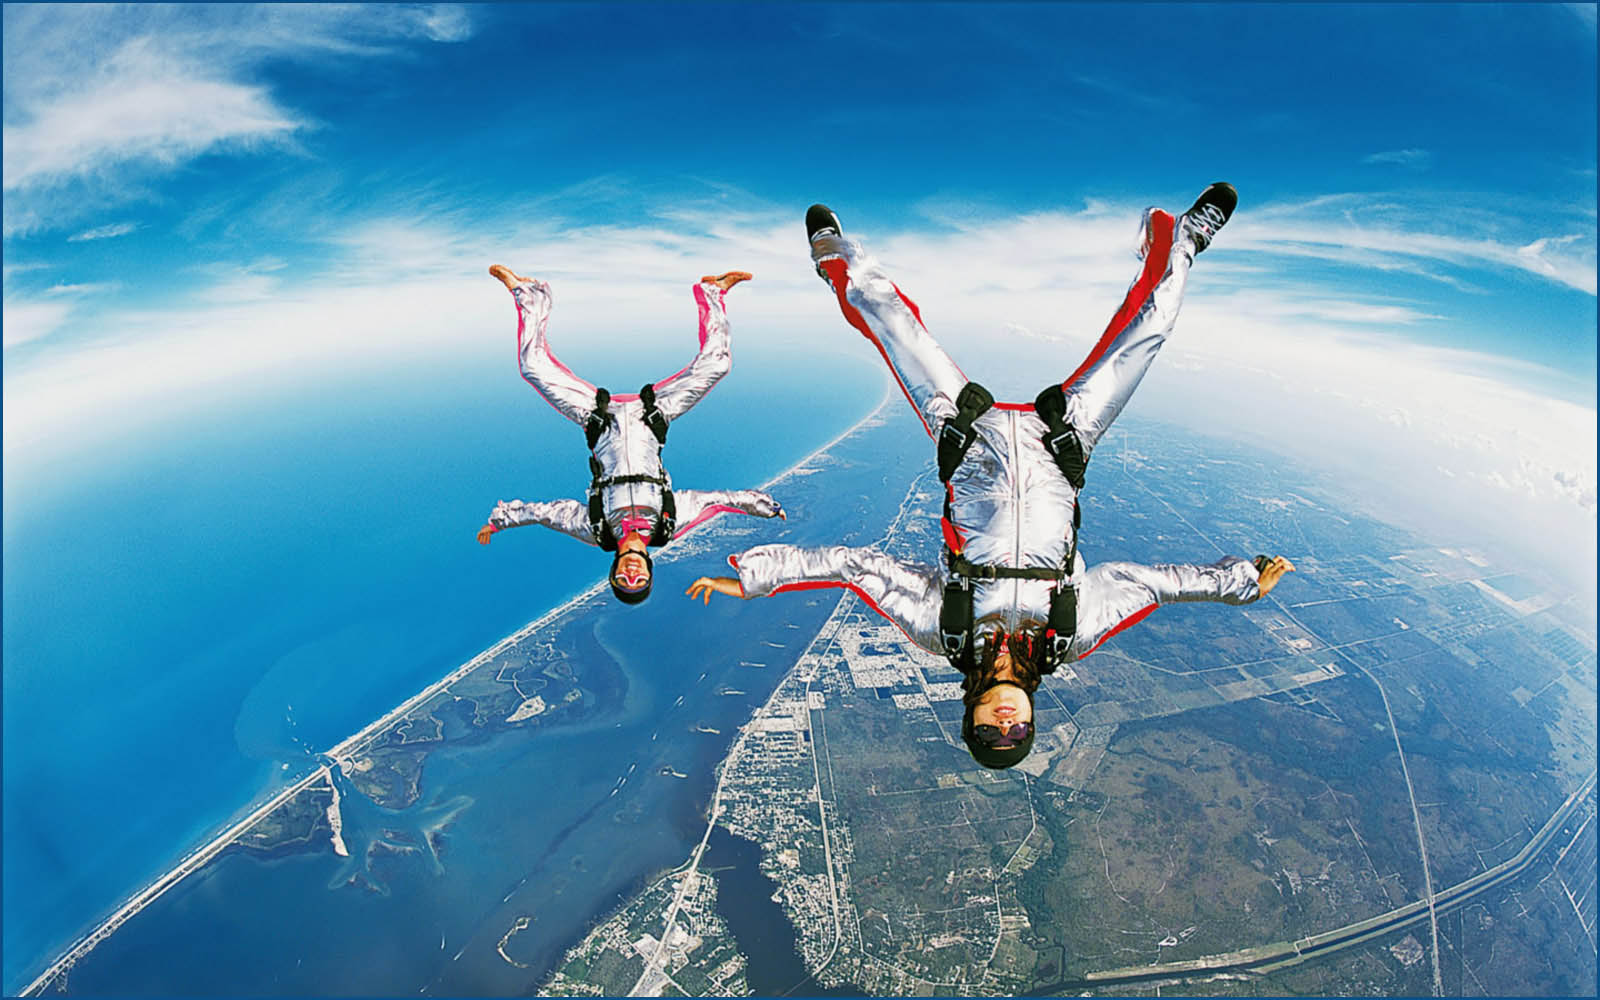 http://4.bp.blogspot.com/-yMQWqWPdeUk/UD5L4uSzRcI/AAAAAAAAIlE/rdi8DbDGlv4/s1600/Skydiving%20Wallpapers%208.jpg